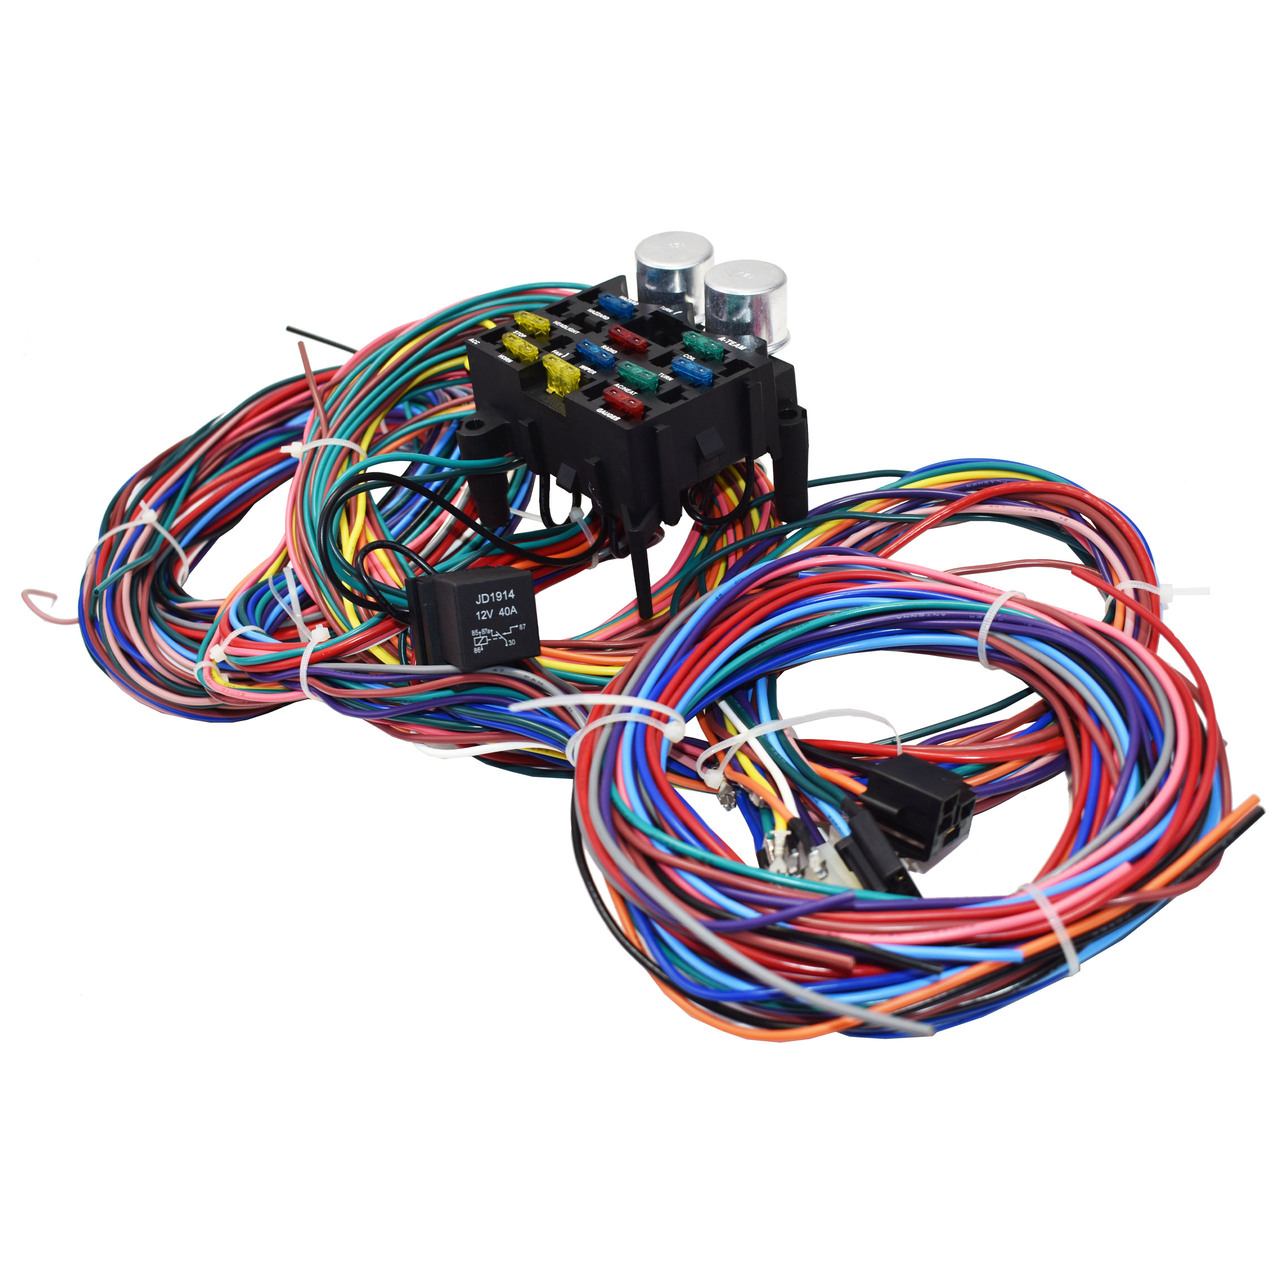 A-Team Performance 12-Circuit Standard Universal Wiring Harness Kit Muscle Car Hot Rod Street Rod XL Wire Cable